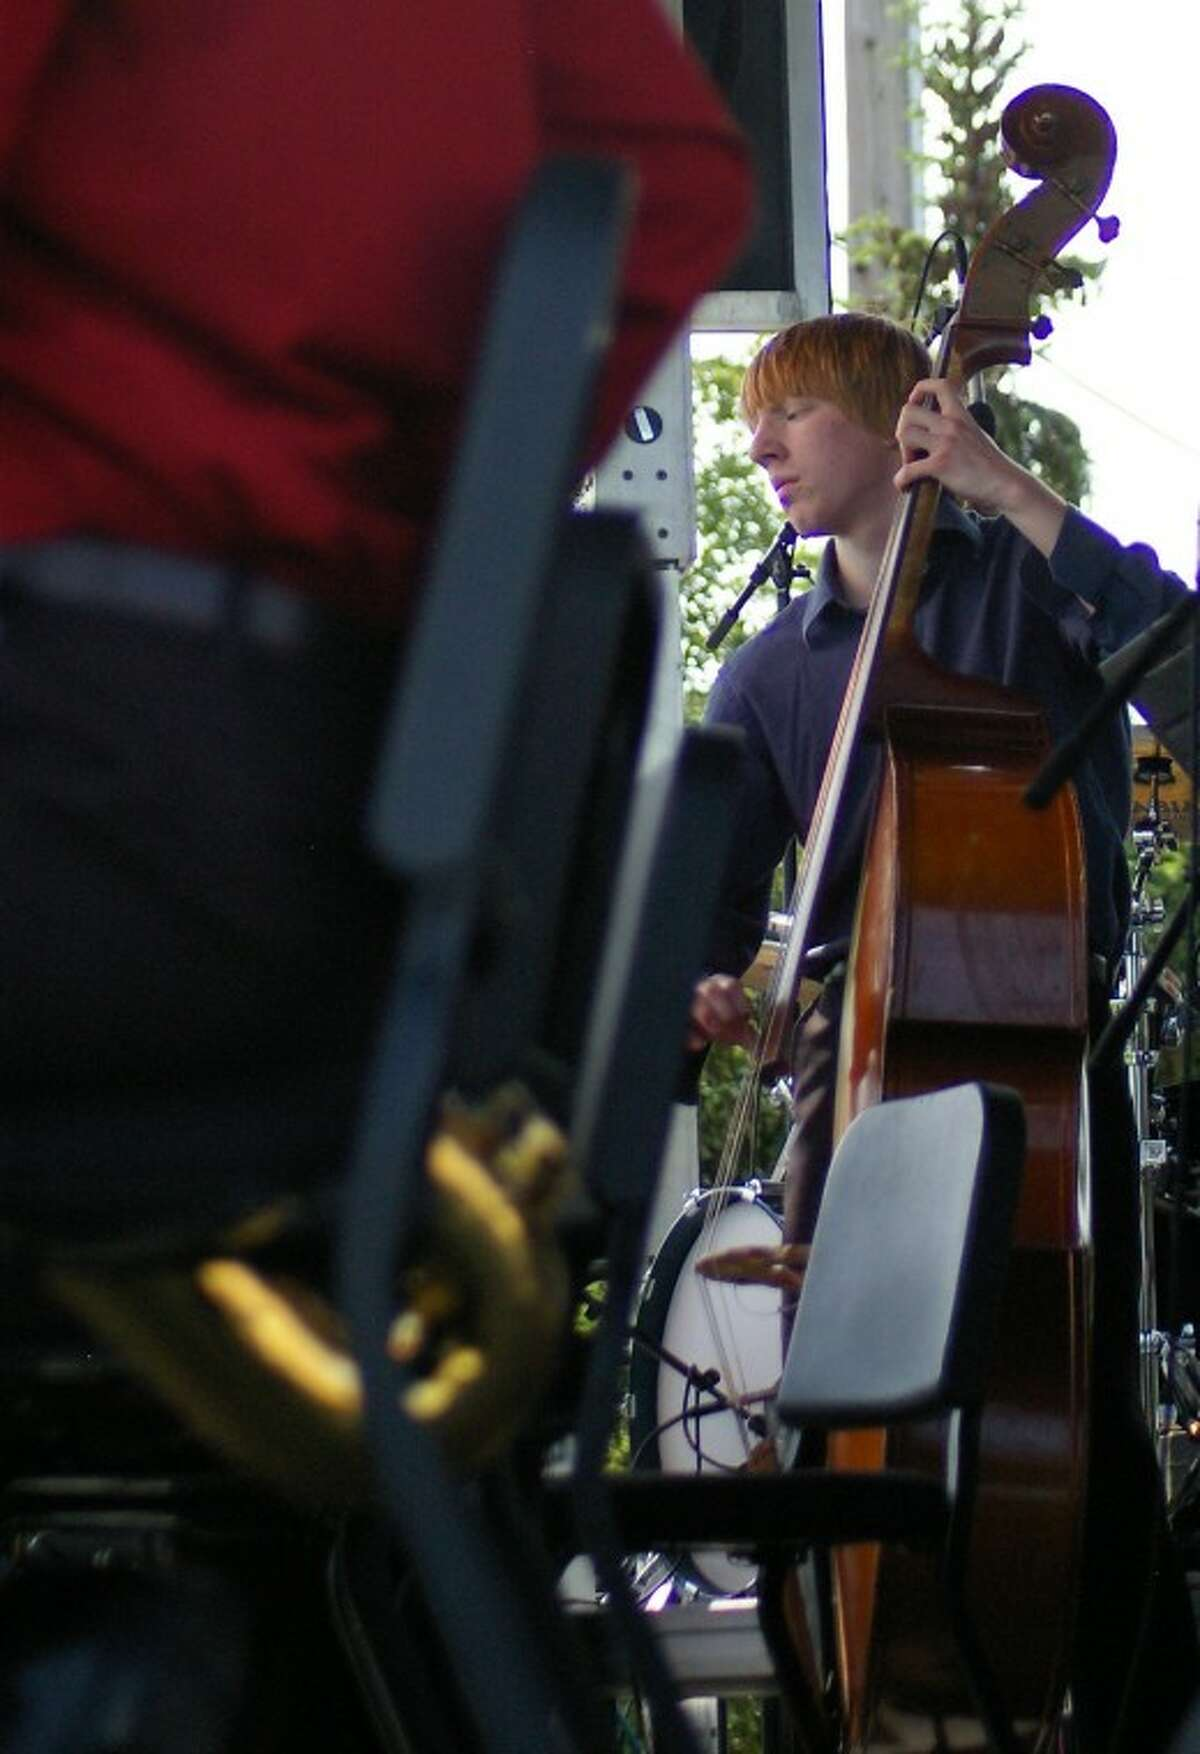 STUART FROHM   for the Daily NewsSam Kneibel, 16, plays bass with the Dow High Jazz Band Saturday afternoon during Jazz Trail in Midland.